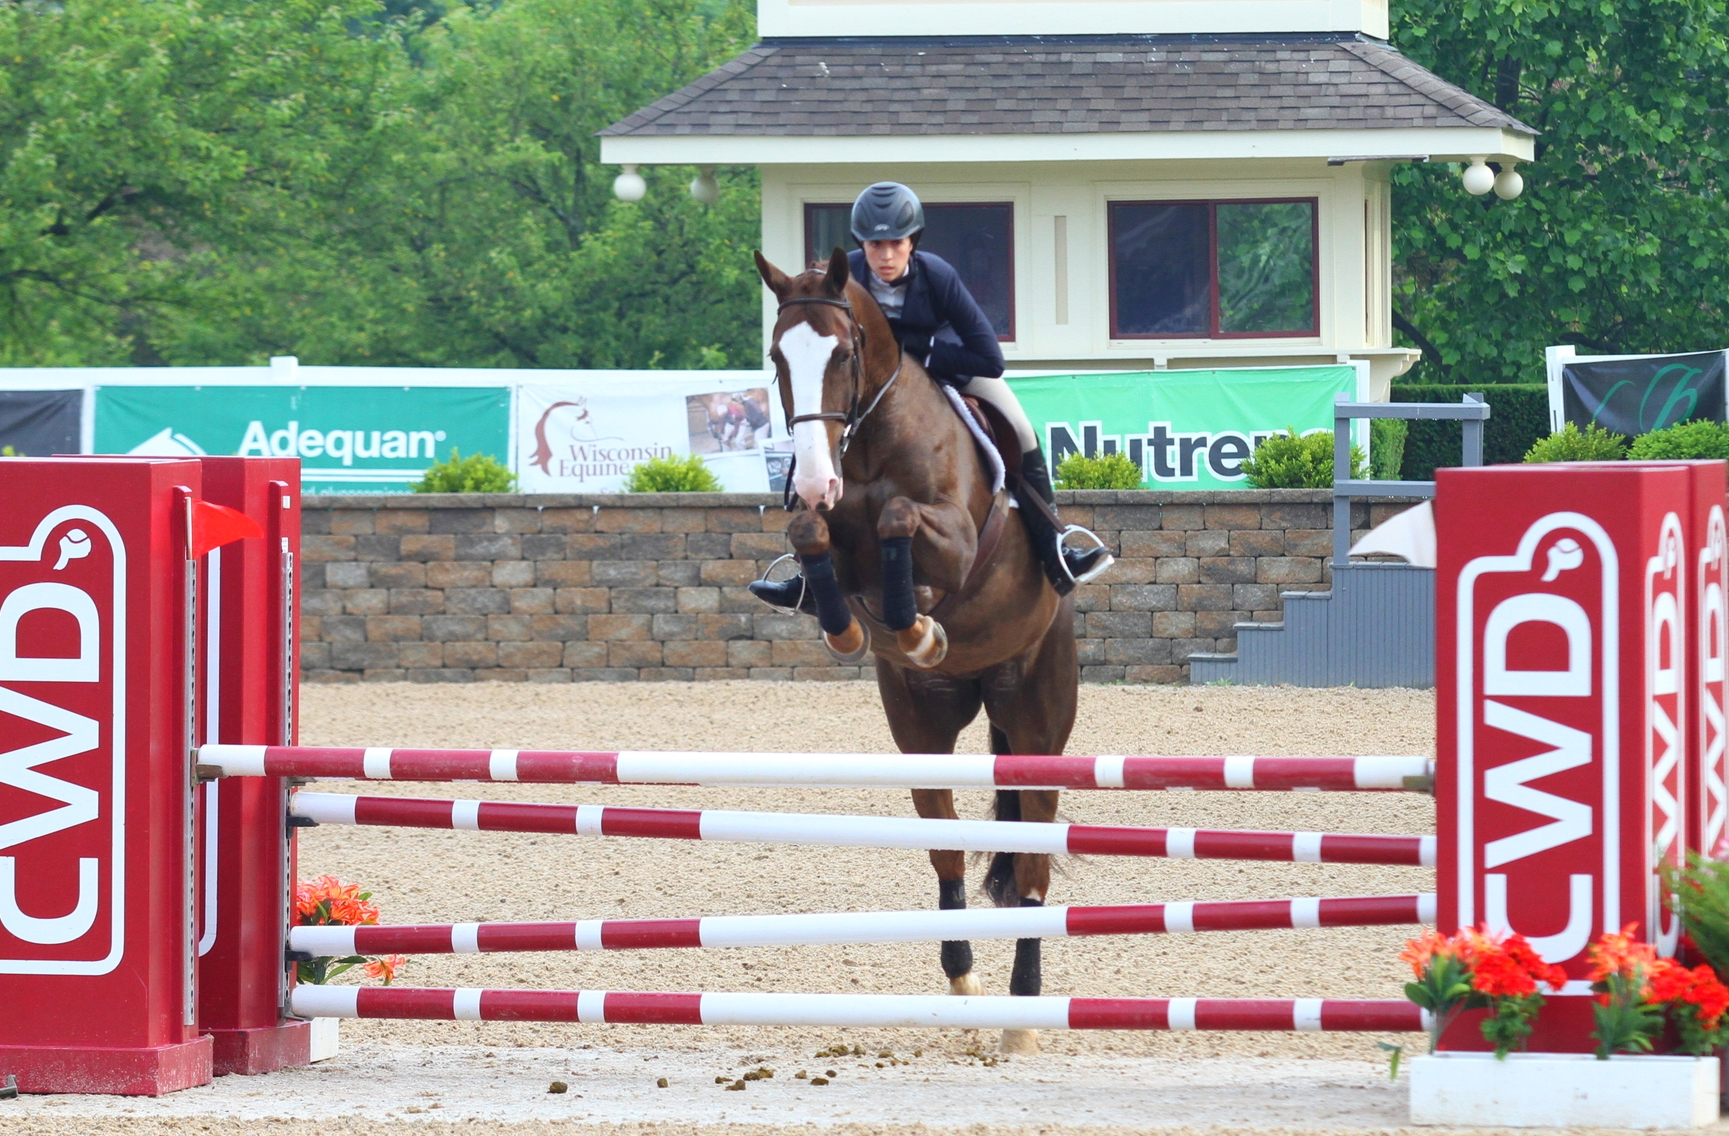 WIHS Jumper Phase  Gia Gulino won the WIHS Classic Jumper Phase aboardher own Armada.